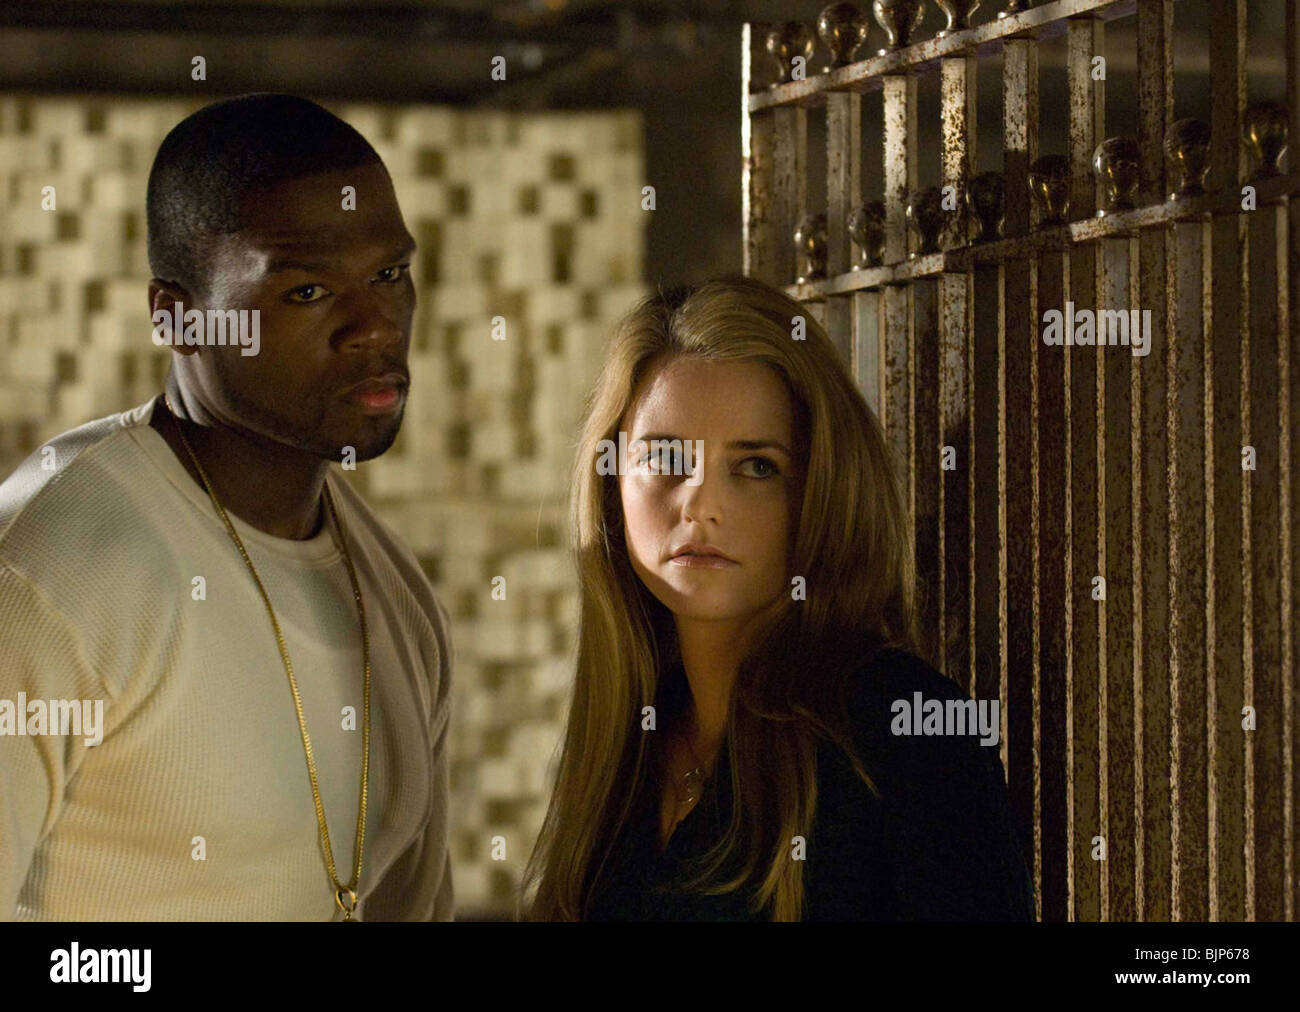 RIGHTEOUS KILL (2009) CURTIS '50 CENT' JACKSON, TRILBY GLOVER JON AVNET (DIR) RIKI 009 - Stock Image